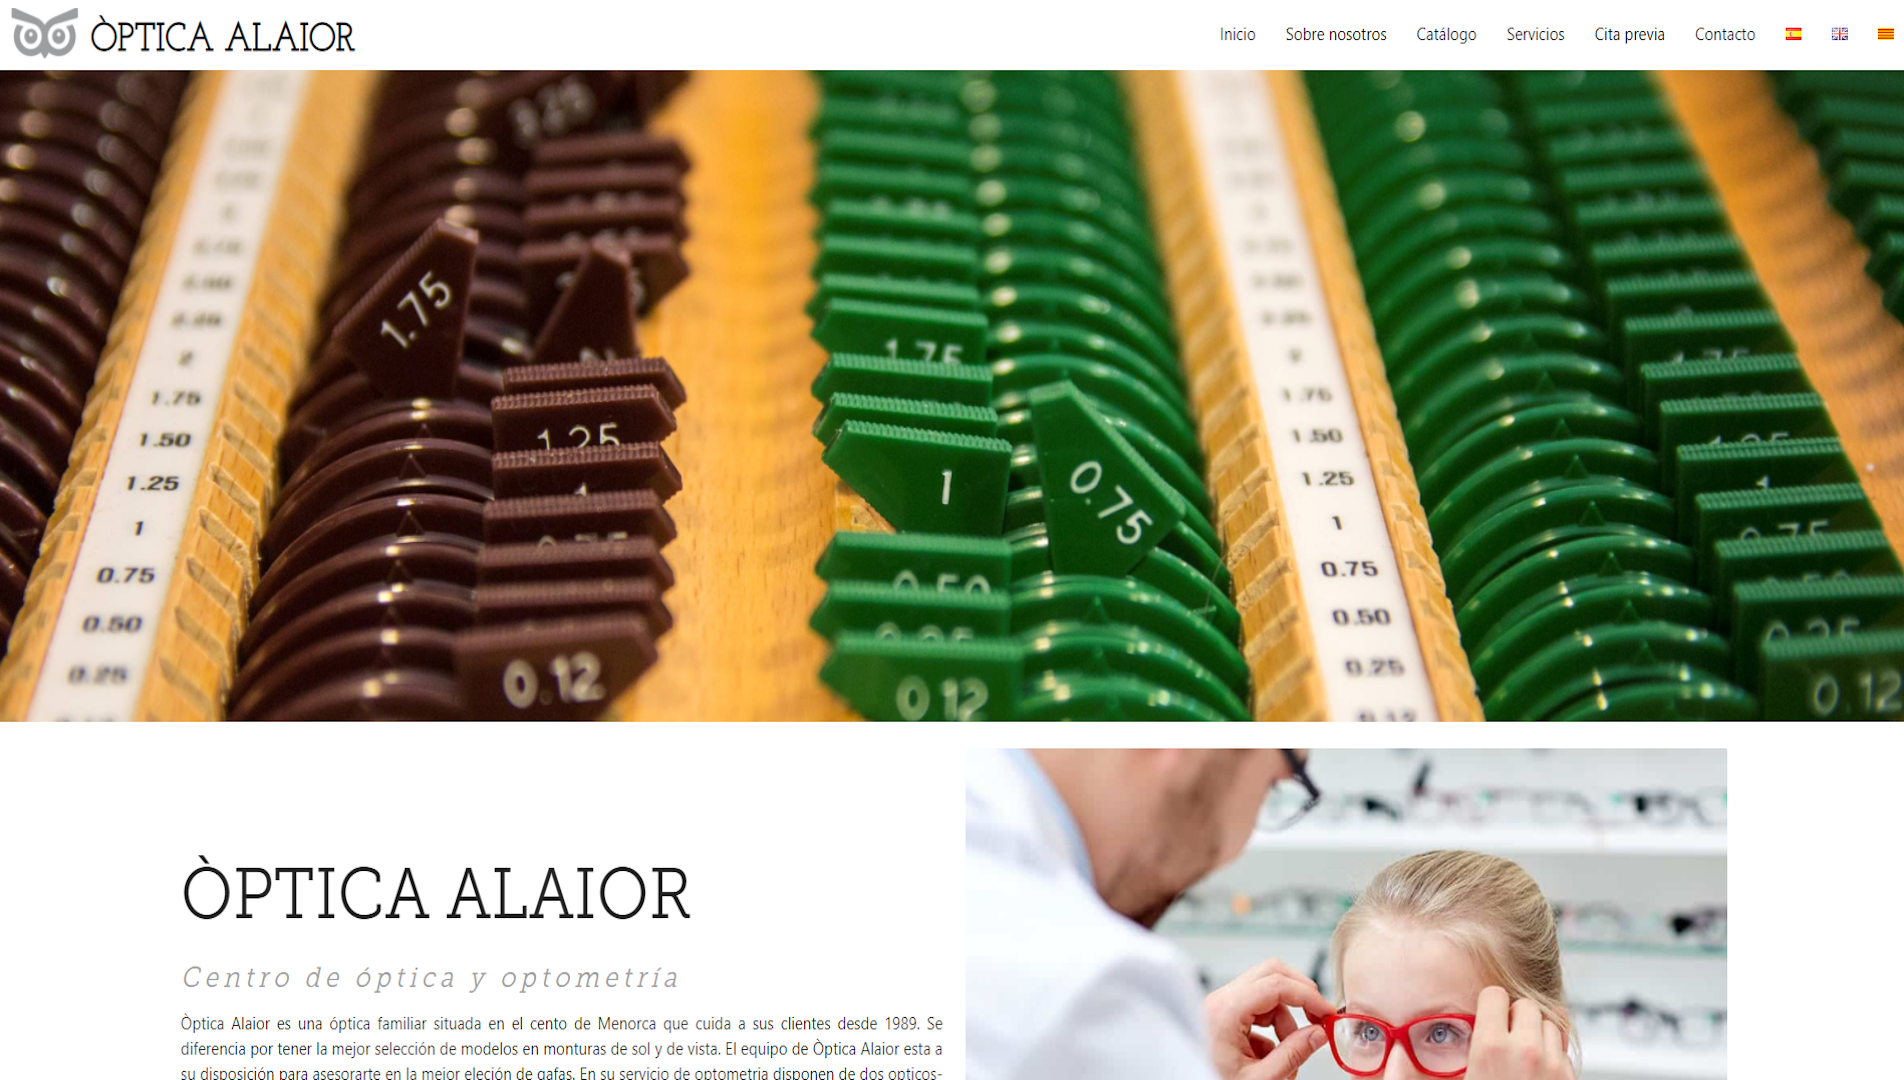 optica alaior